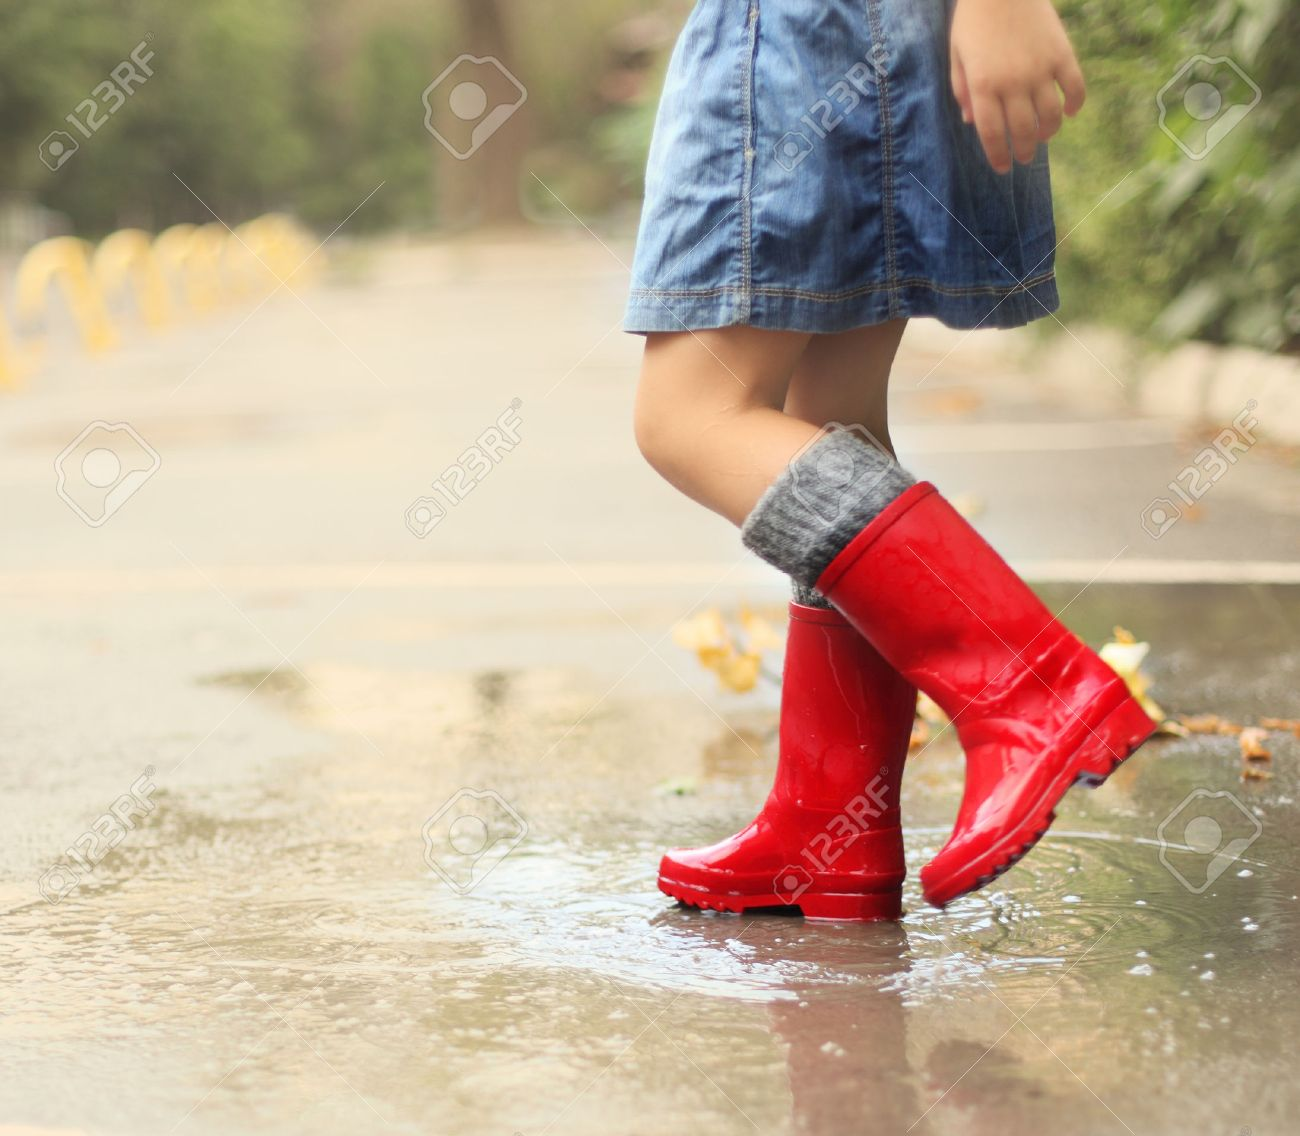 Child Wearing Red Rain Boots Jumping Into A Puddle. Close Up Stock ...